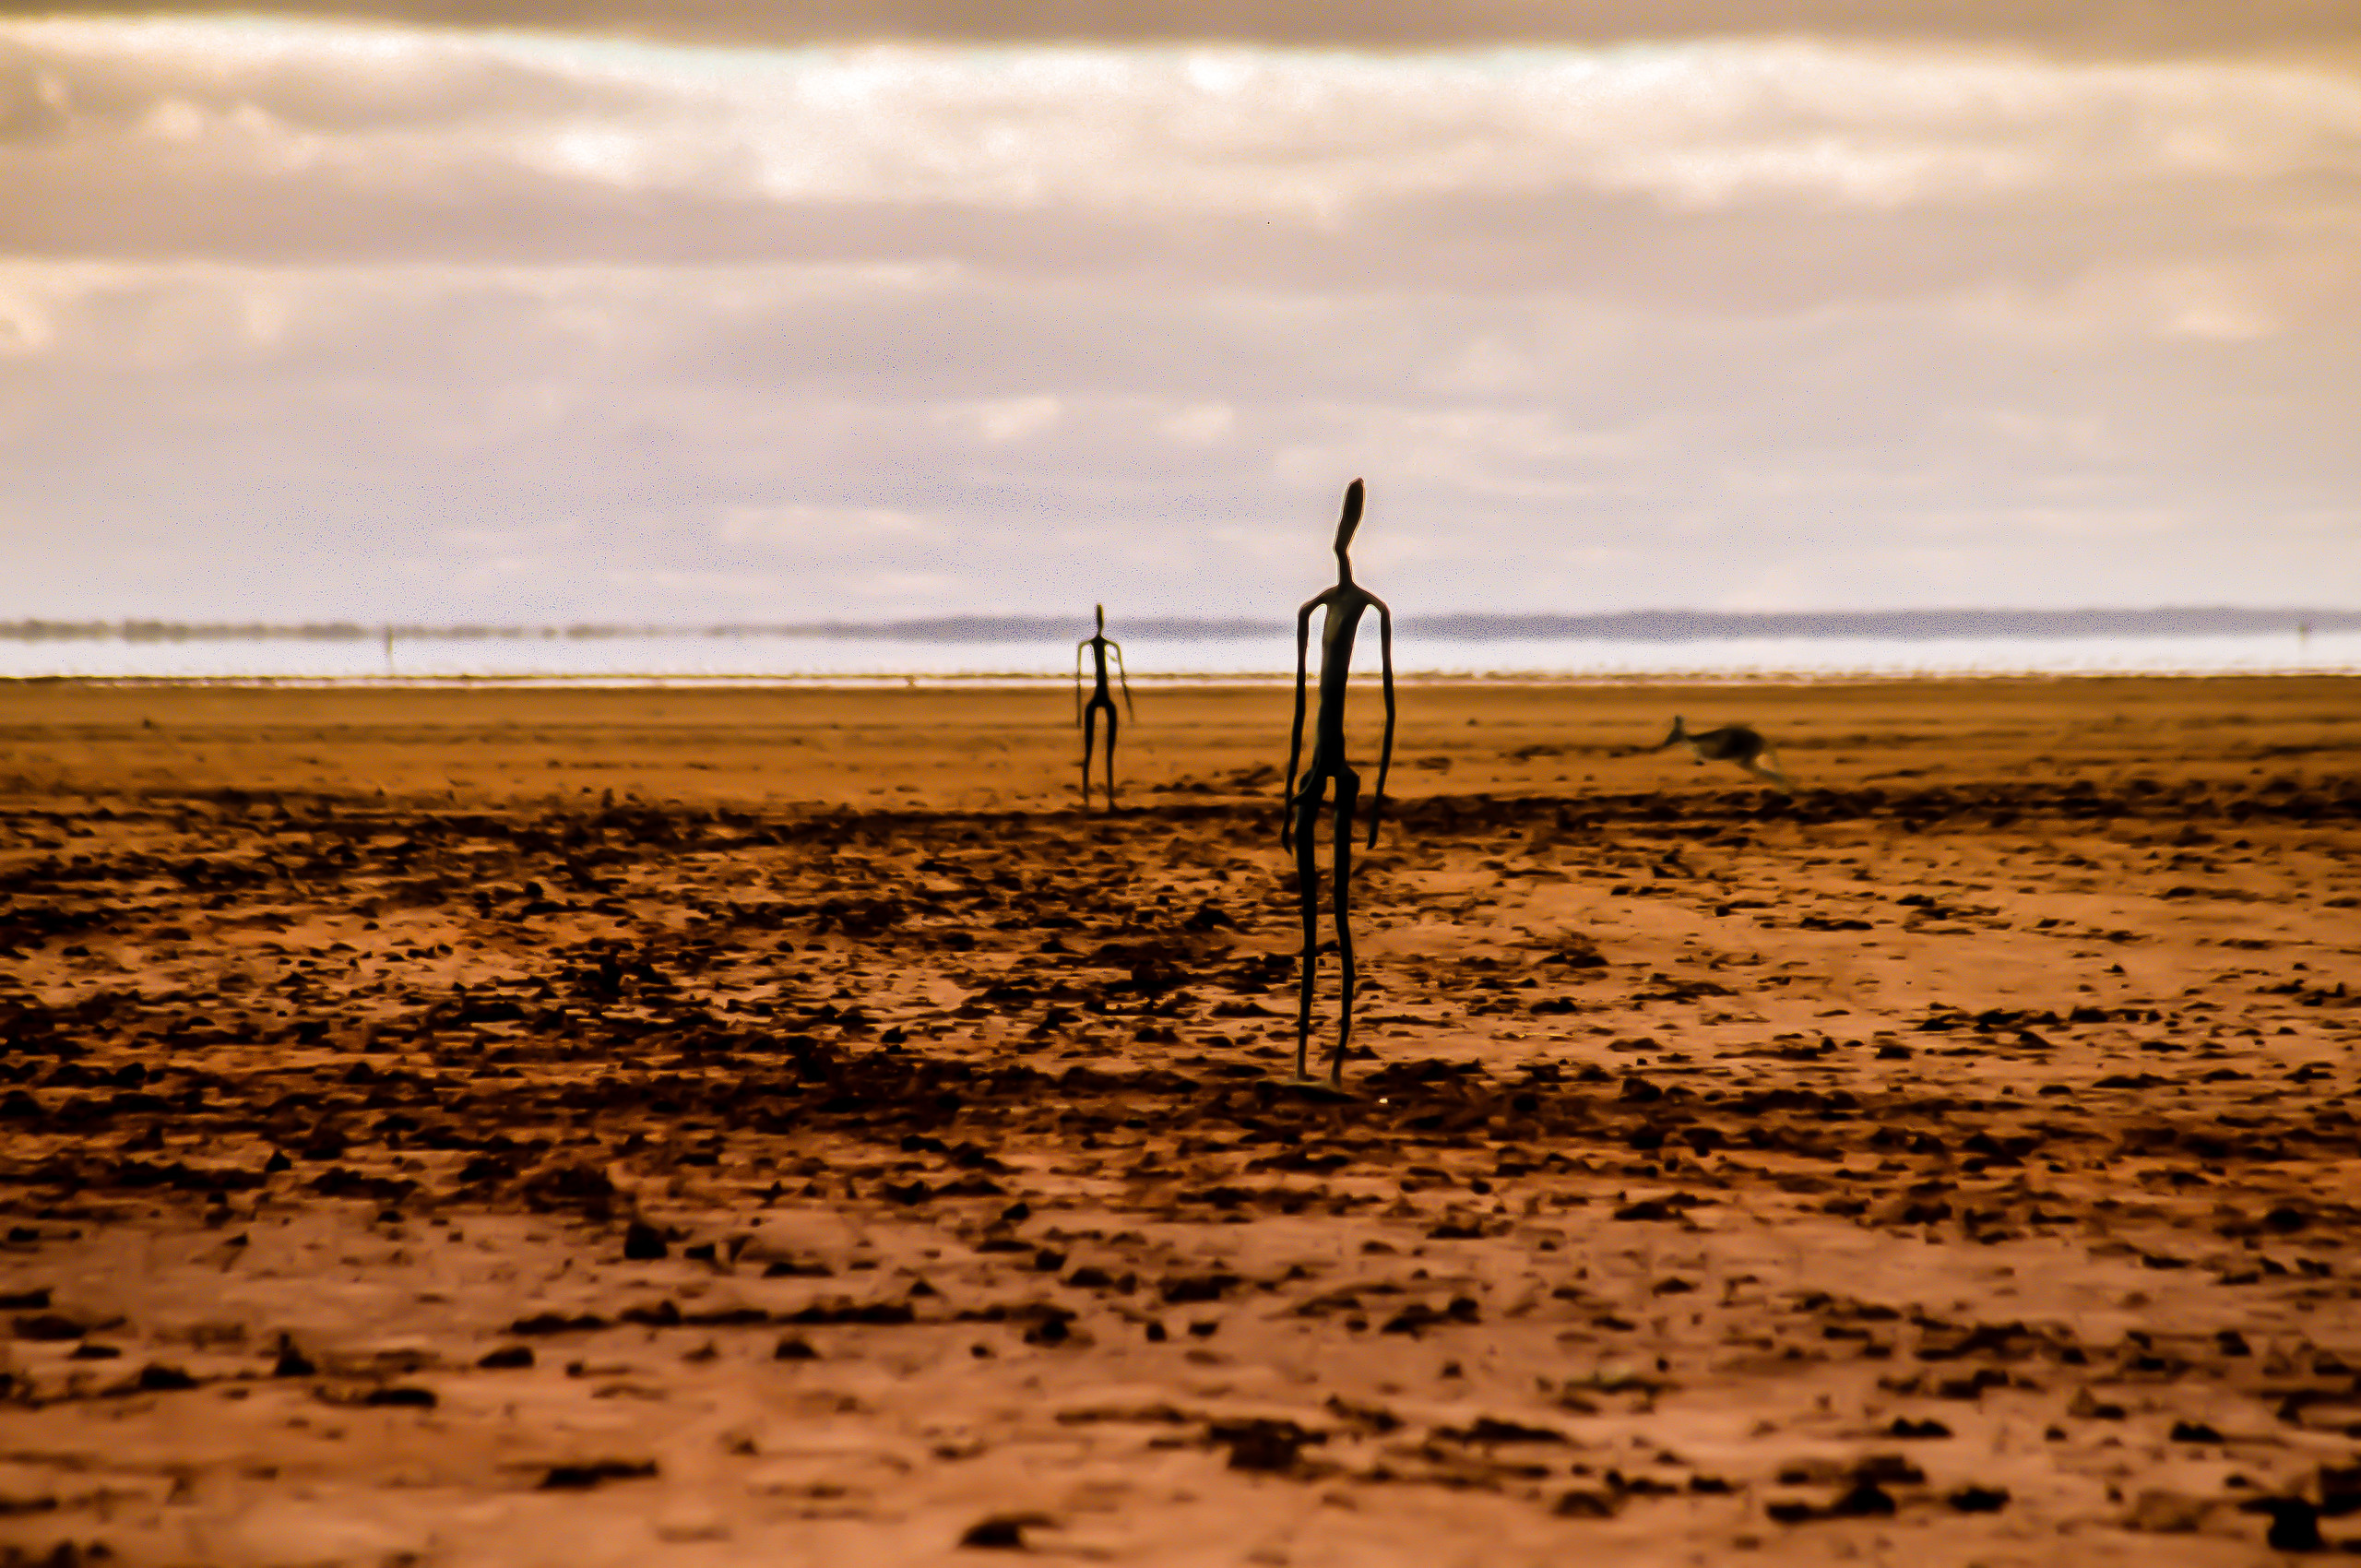 Anthony Gormley Sculptures on Lake Ballard, 200km north of Kalgoorlie in Western Australia